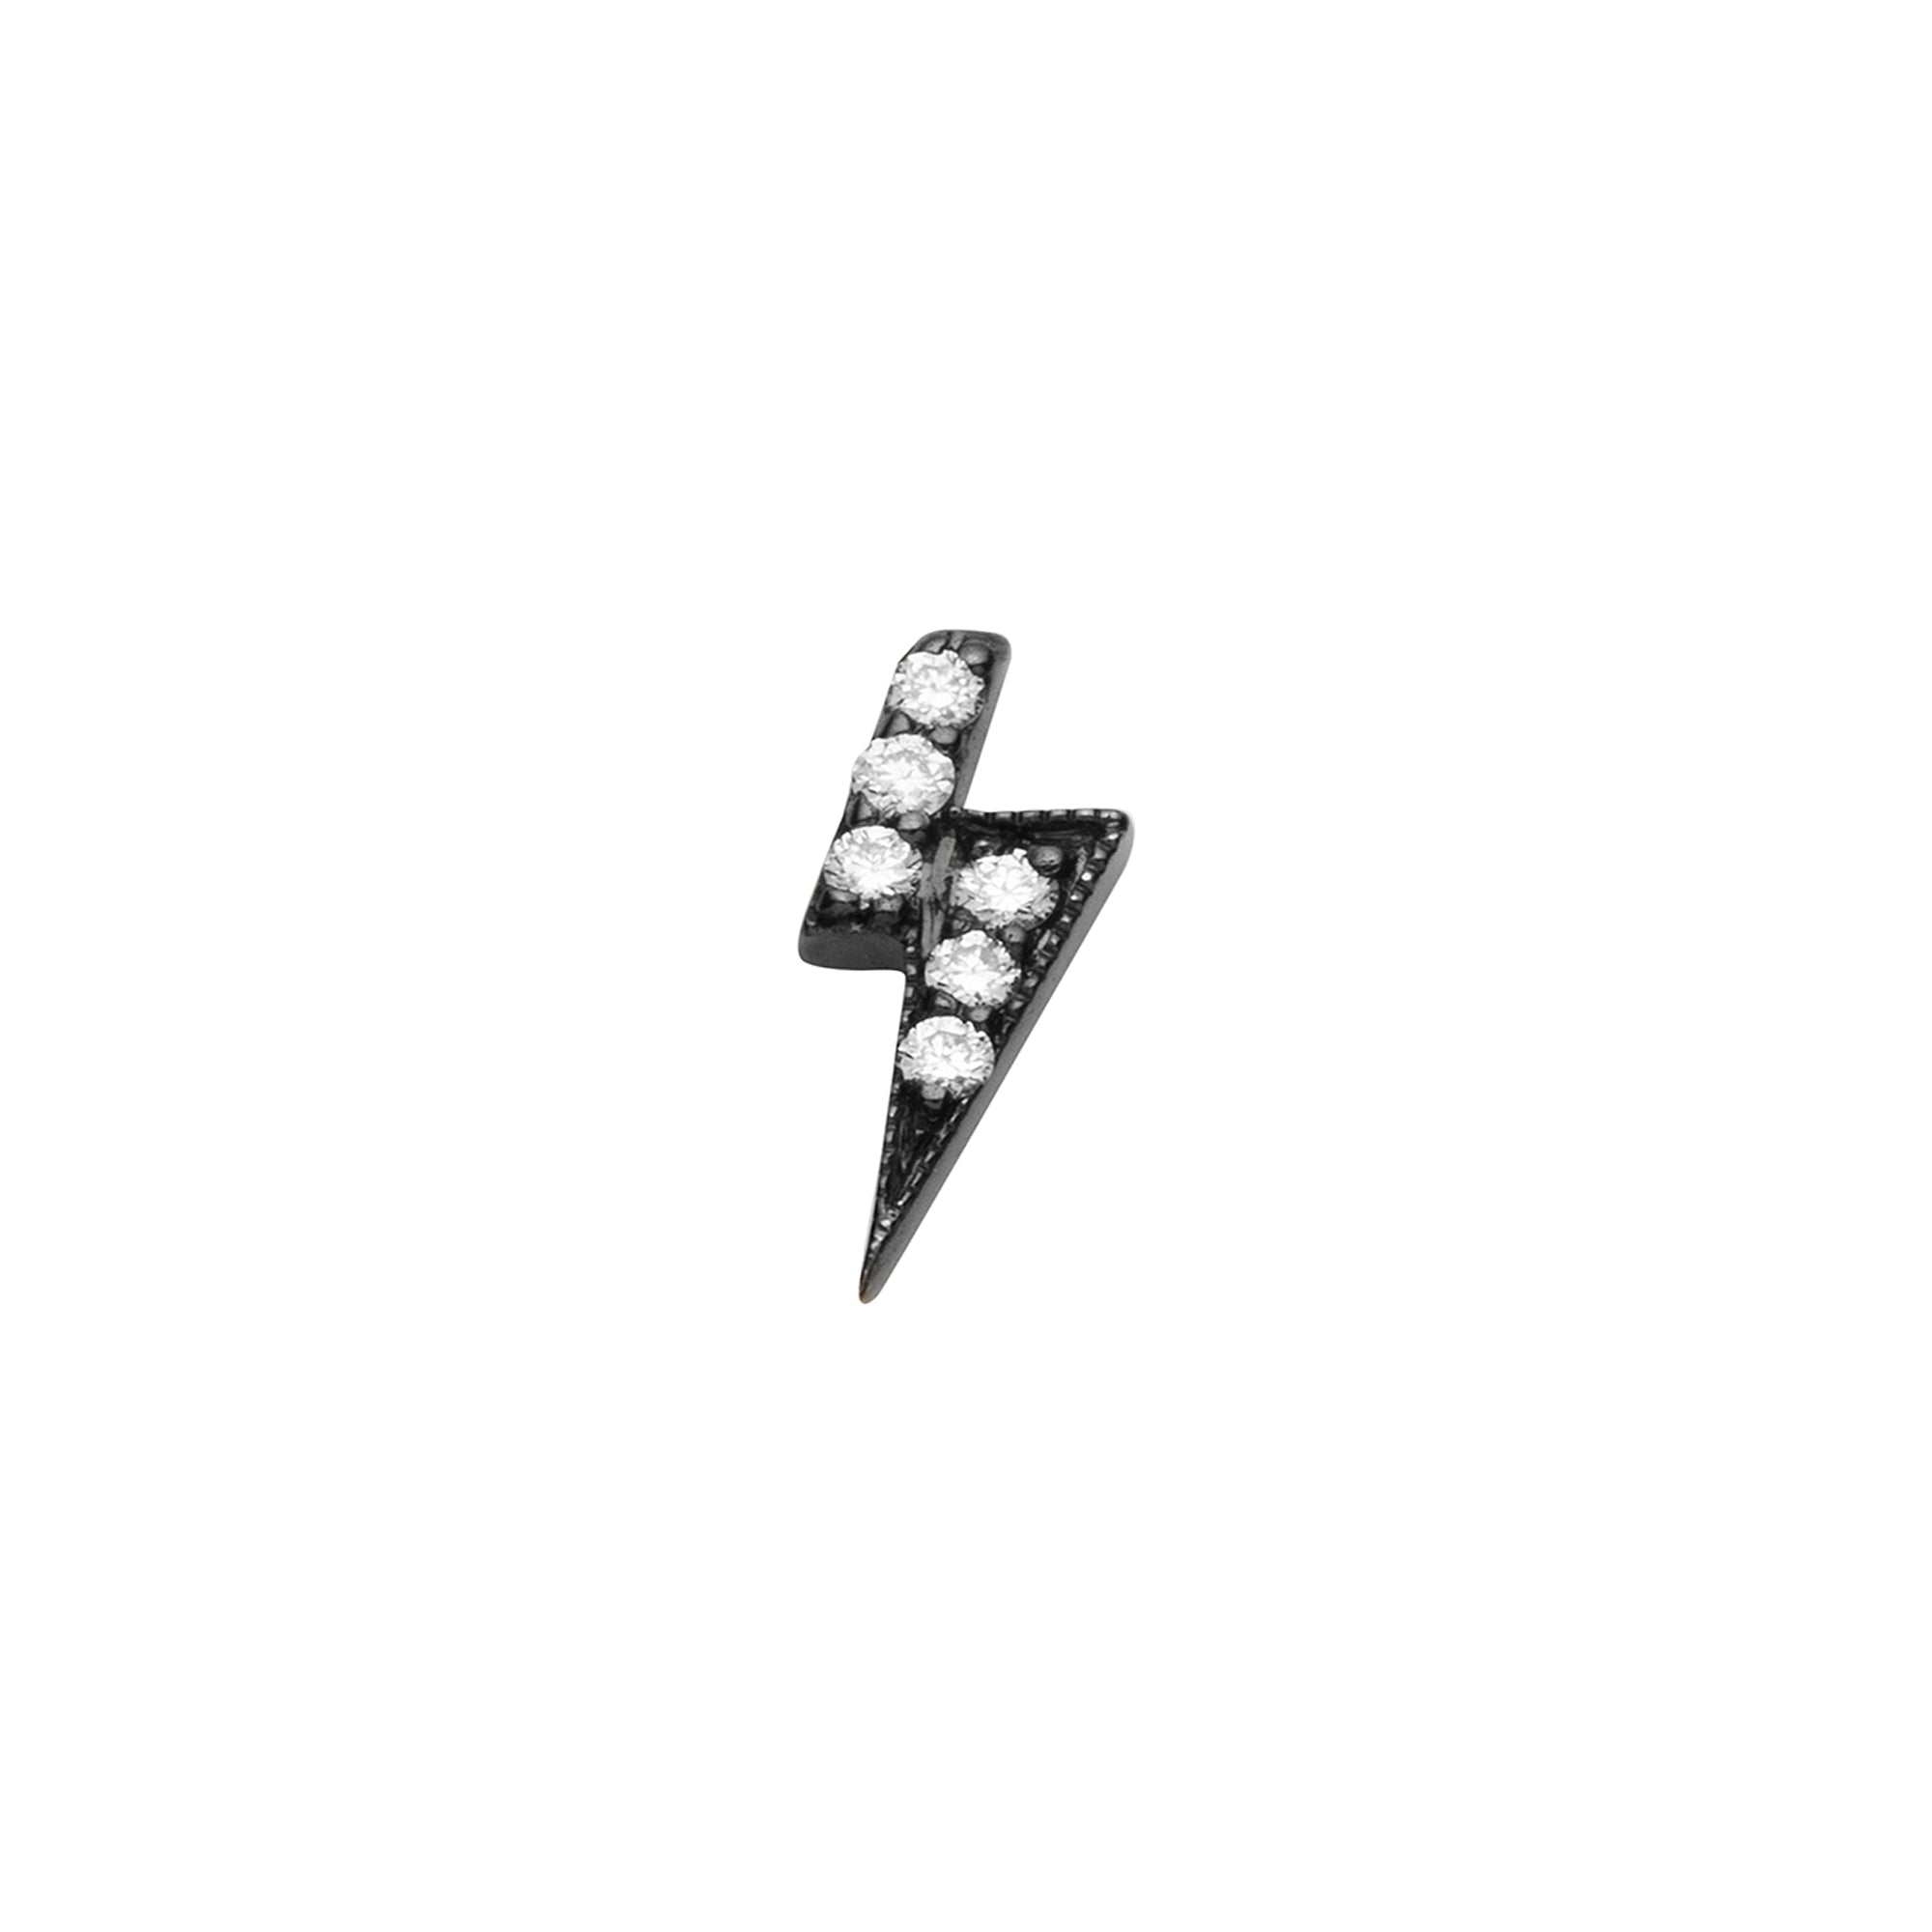 Loquet Lightning Bolt Stud - Earrings - Broken English Jewelry